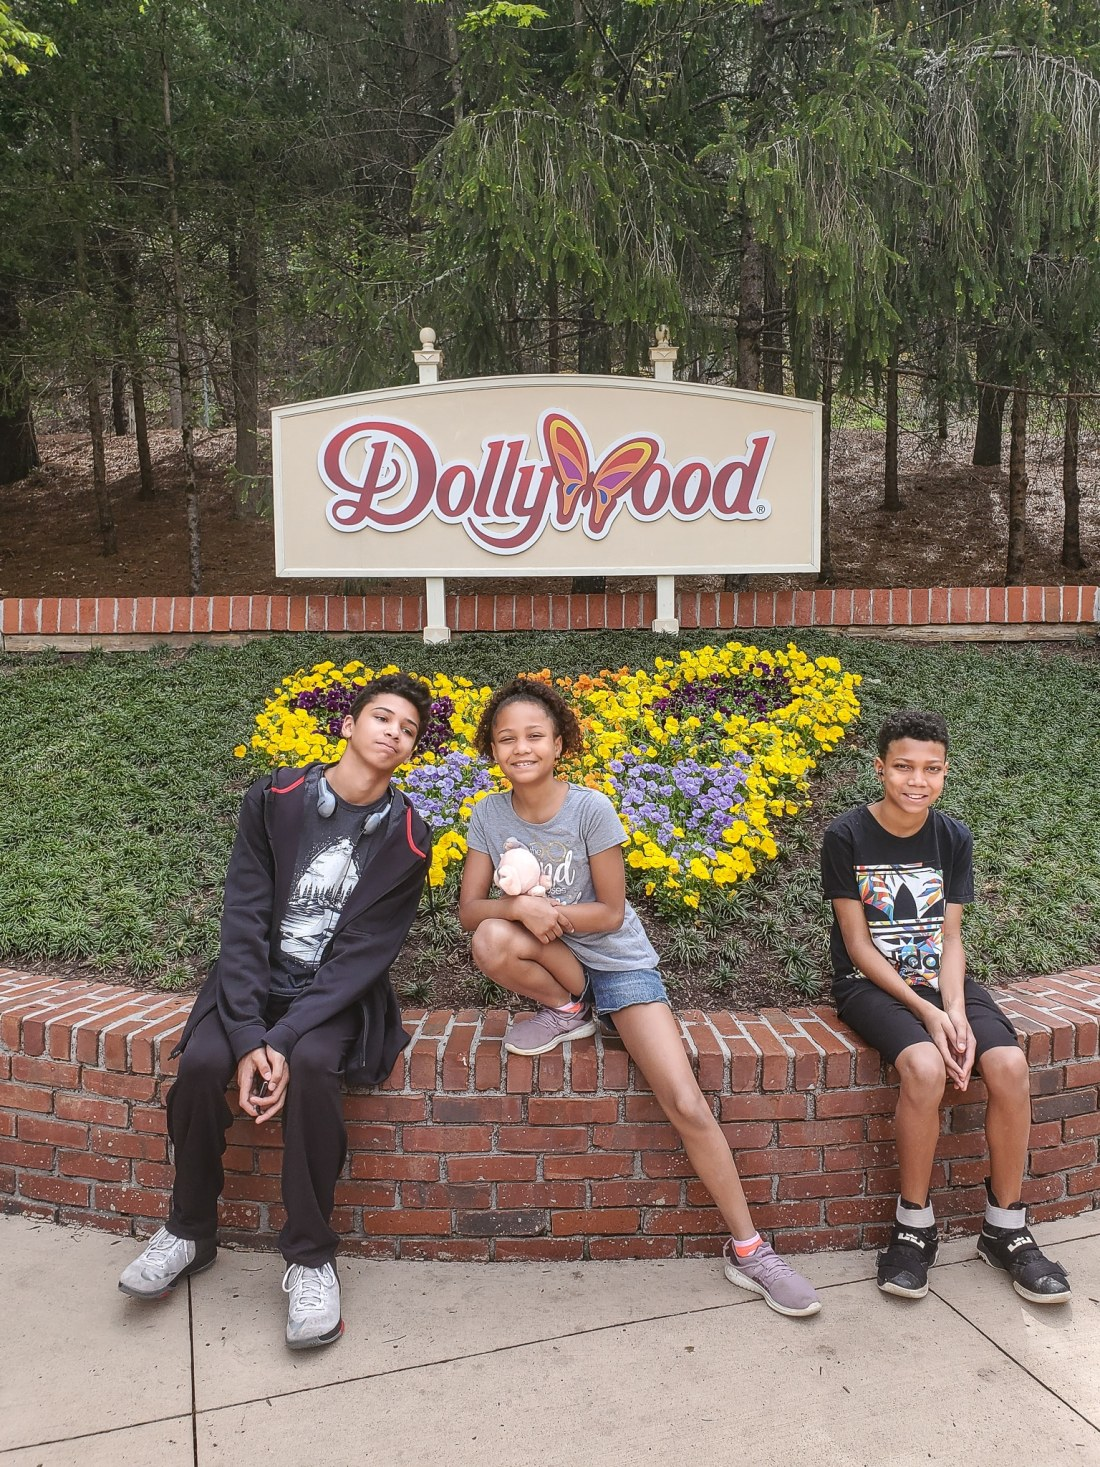 My family spent the day playing and eating at the Dollywood theme park, and we are happy to report we had a blast! Read all about our trip and learn why Dollwood is a must visit destination while you are in Pigeon Forge, TN.